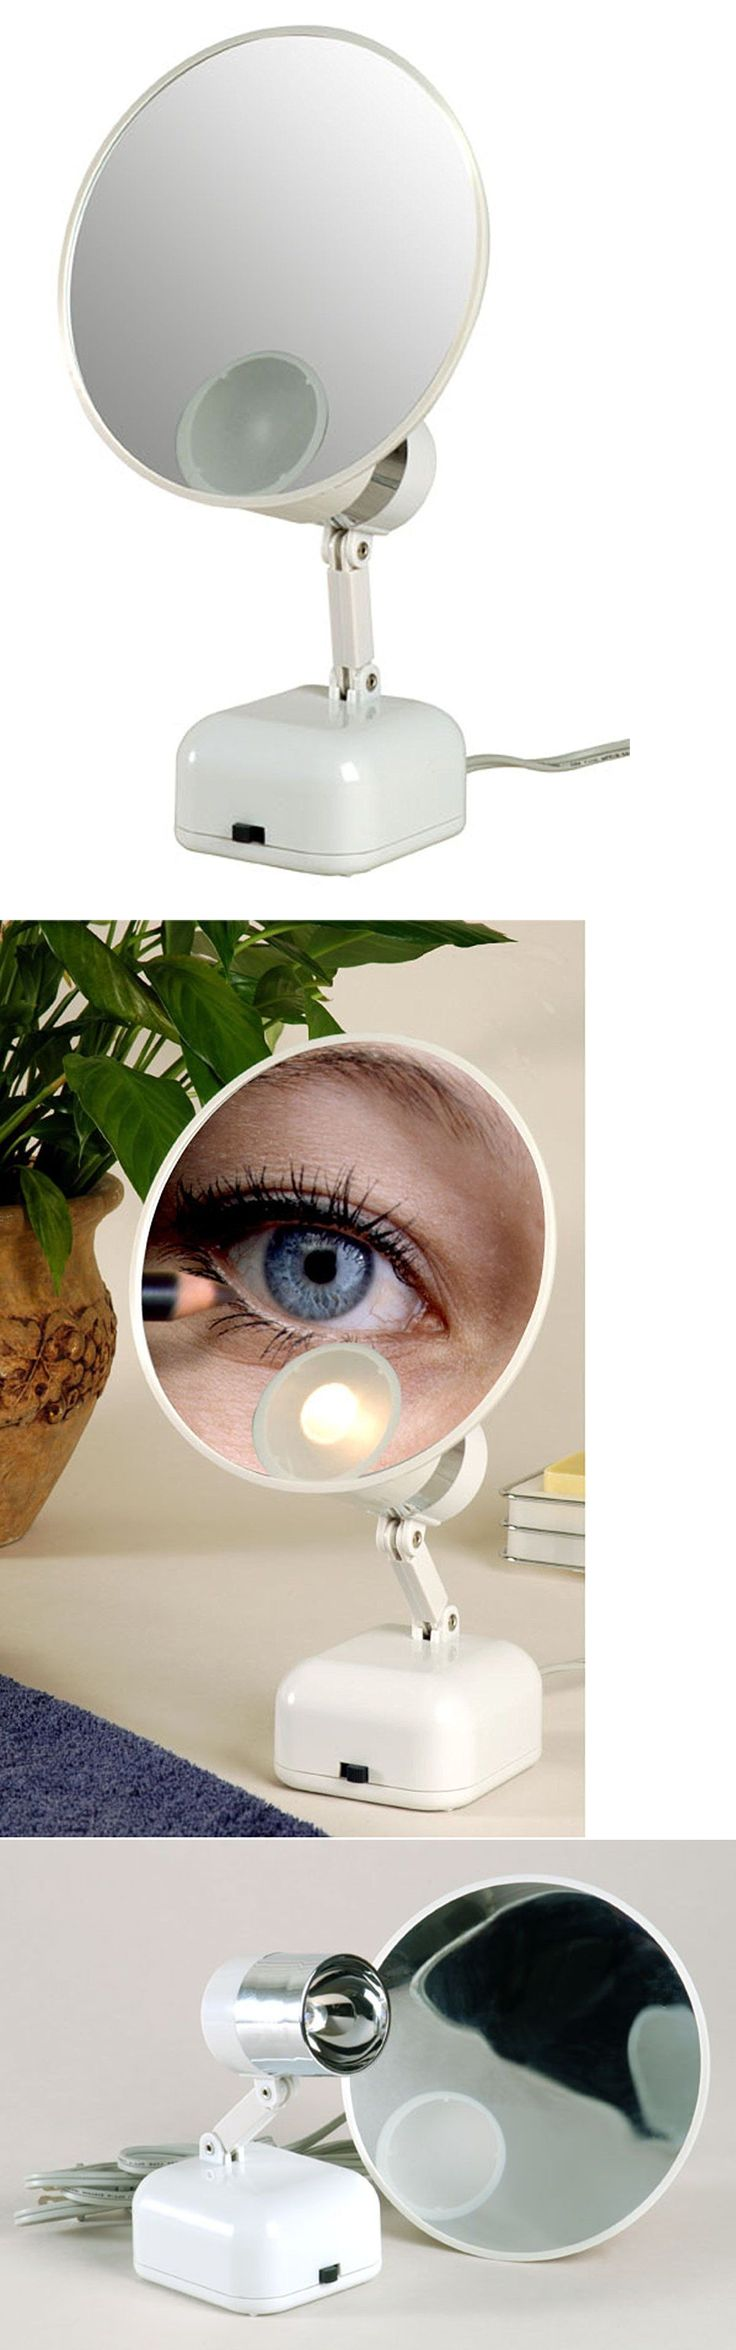 Makeup Mirrors: Floxite 15X Supervision Magnifying Mirror Light White BUY IT NOW ONLY: $56.85